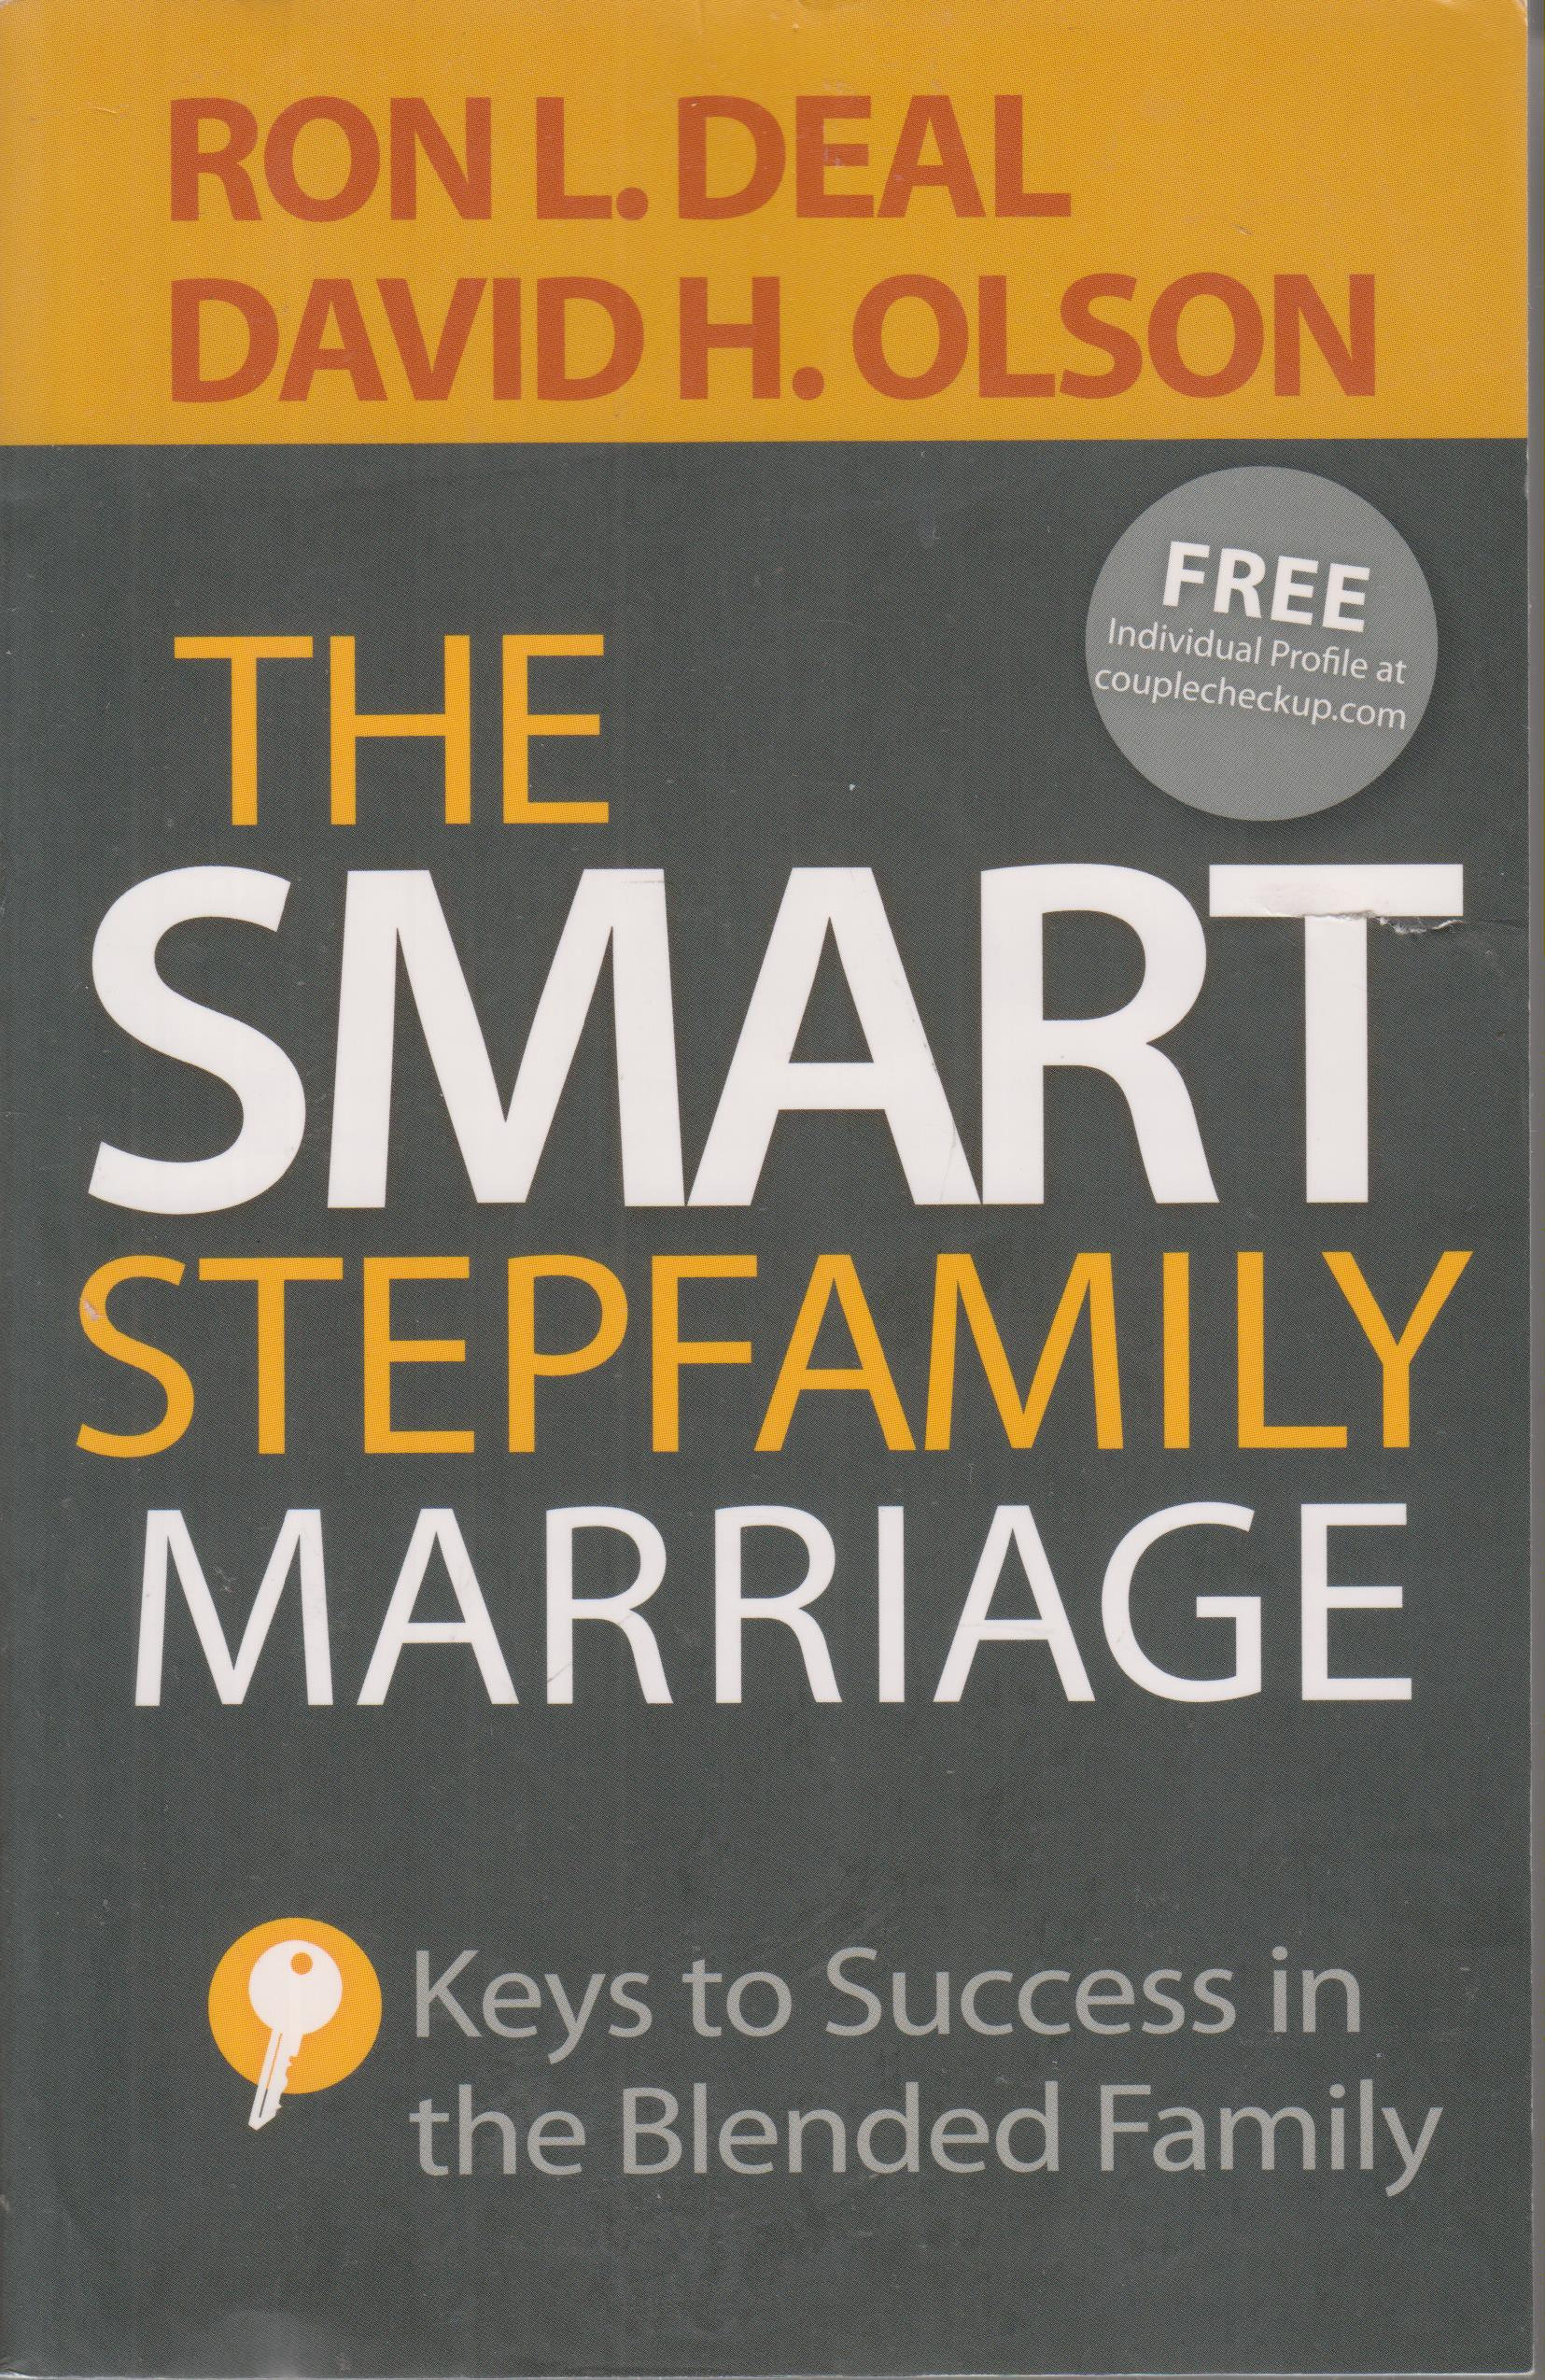 The Smart Stepfamily Marriage Softcover Self Help